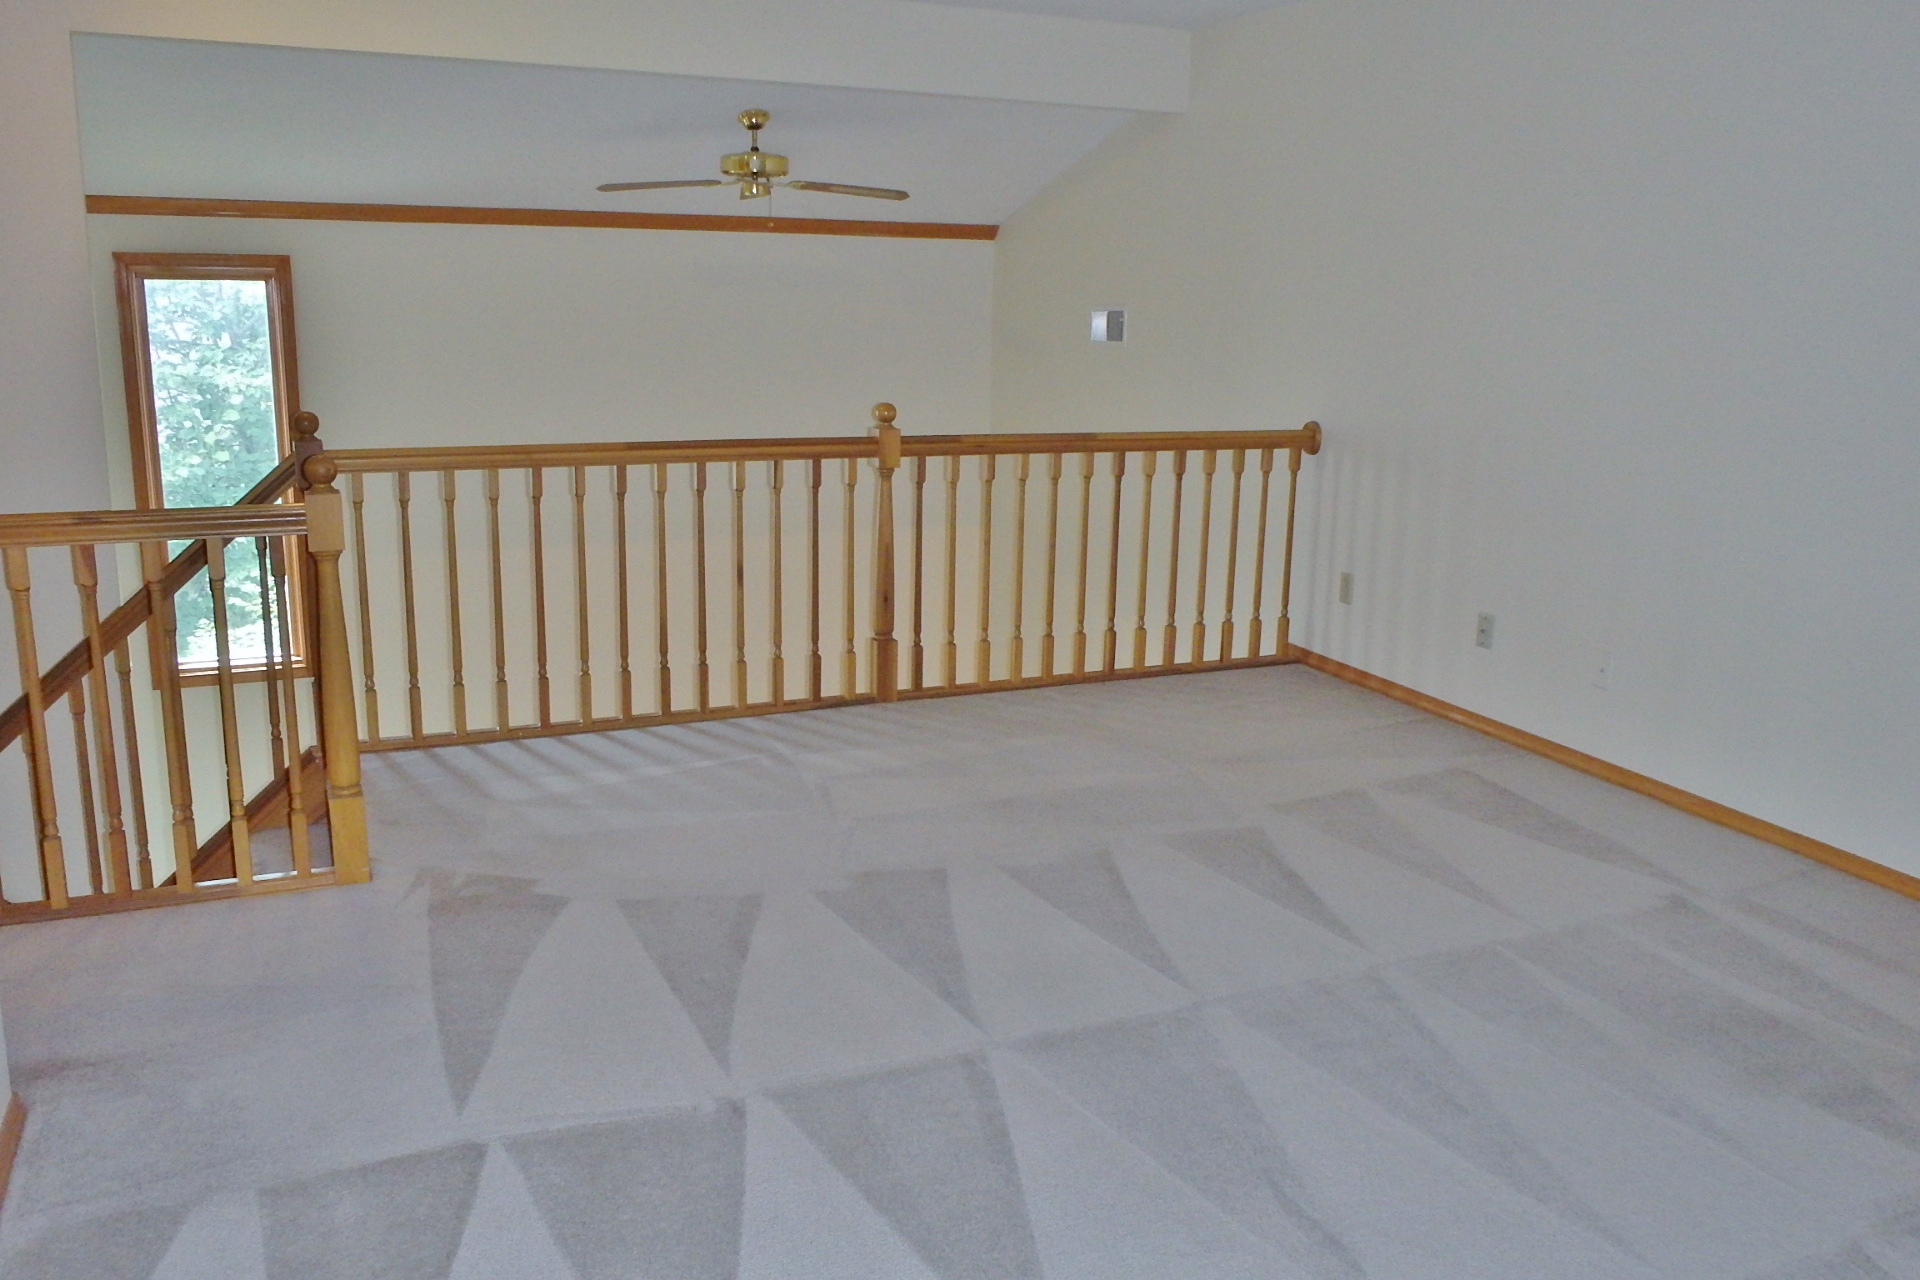 Loft photo at 732 Galen Drive in State College, PA.